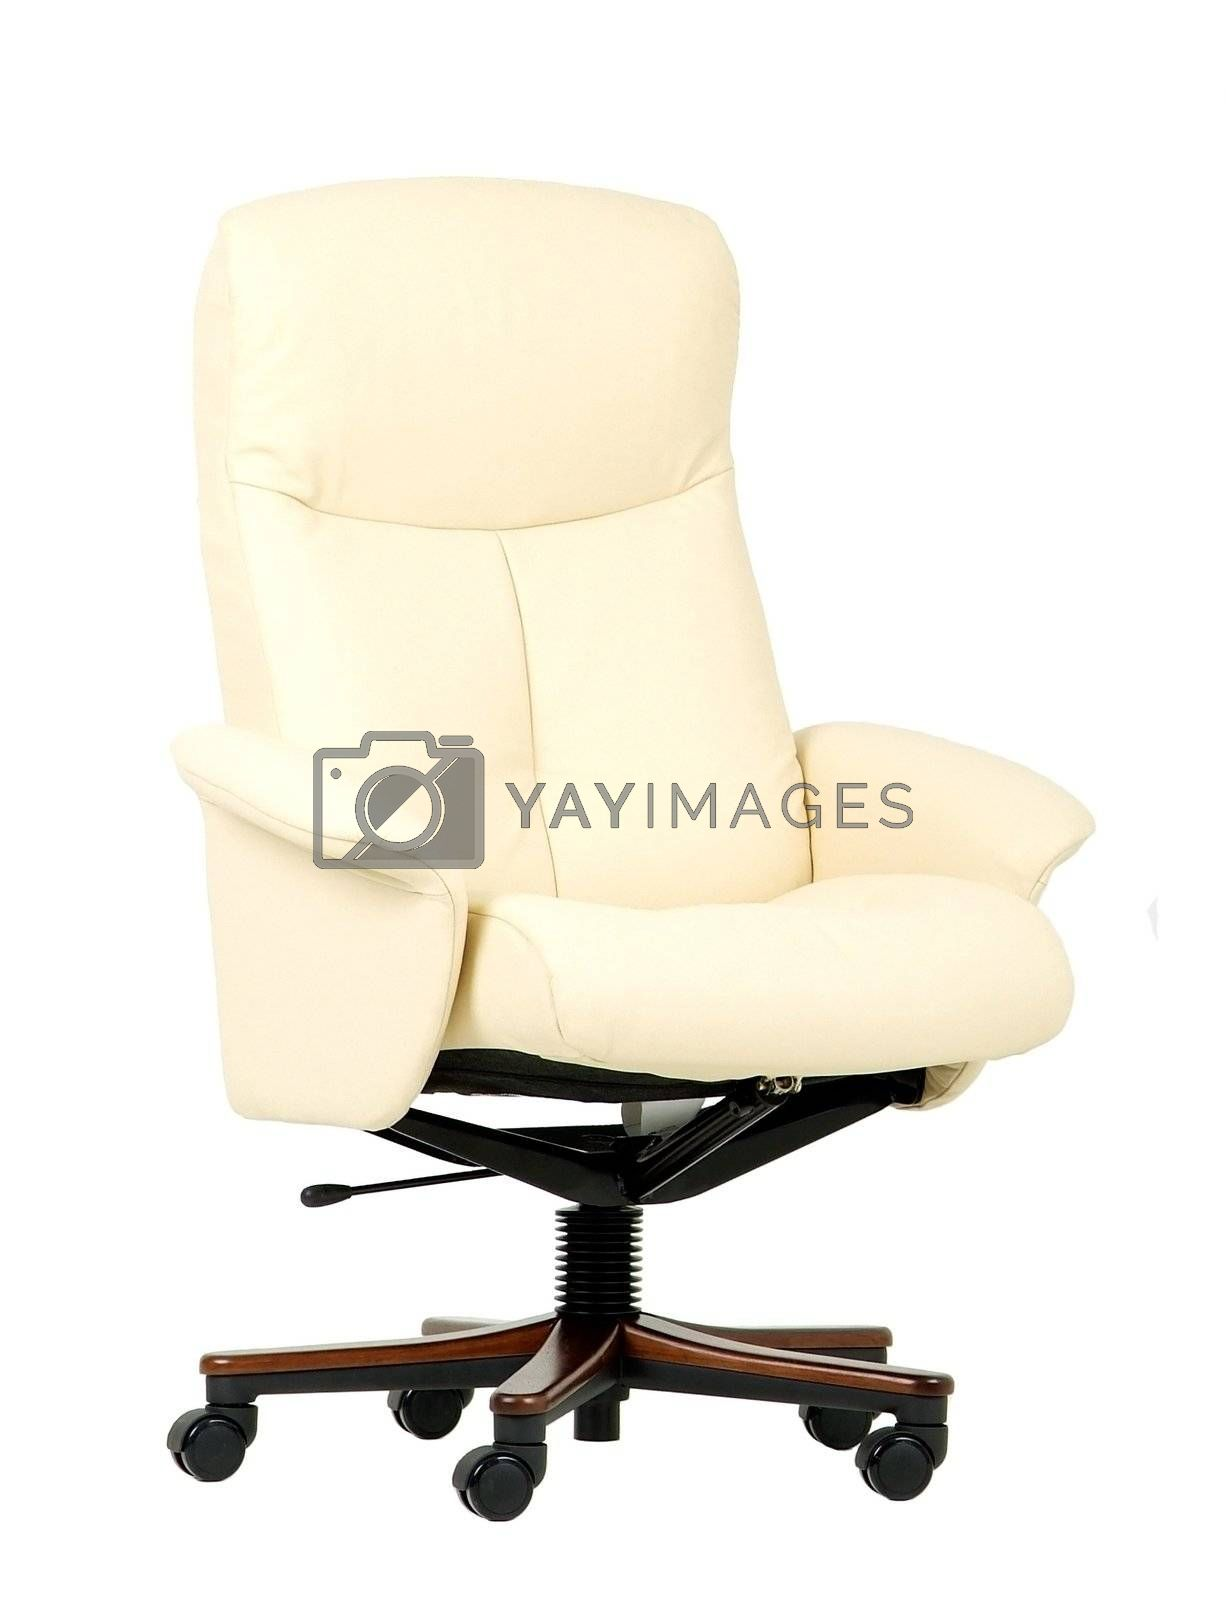 Off-white luxury office chair by epixx